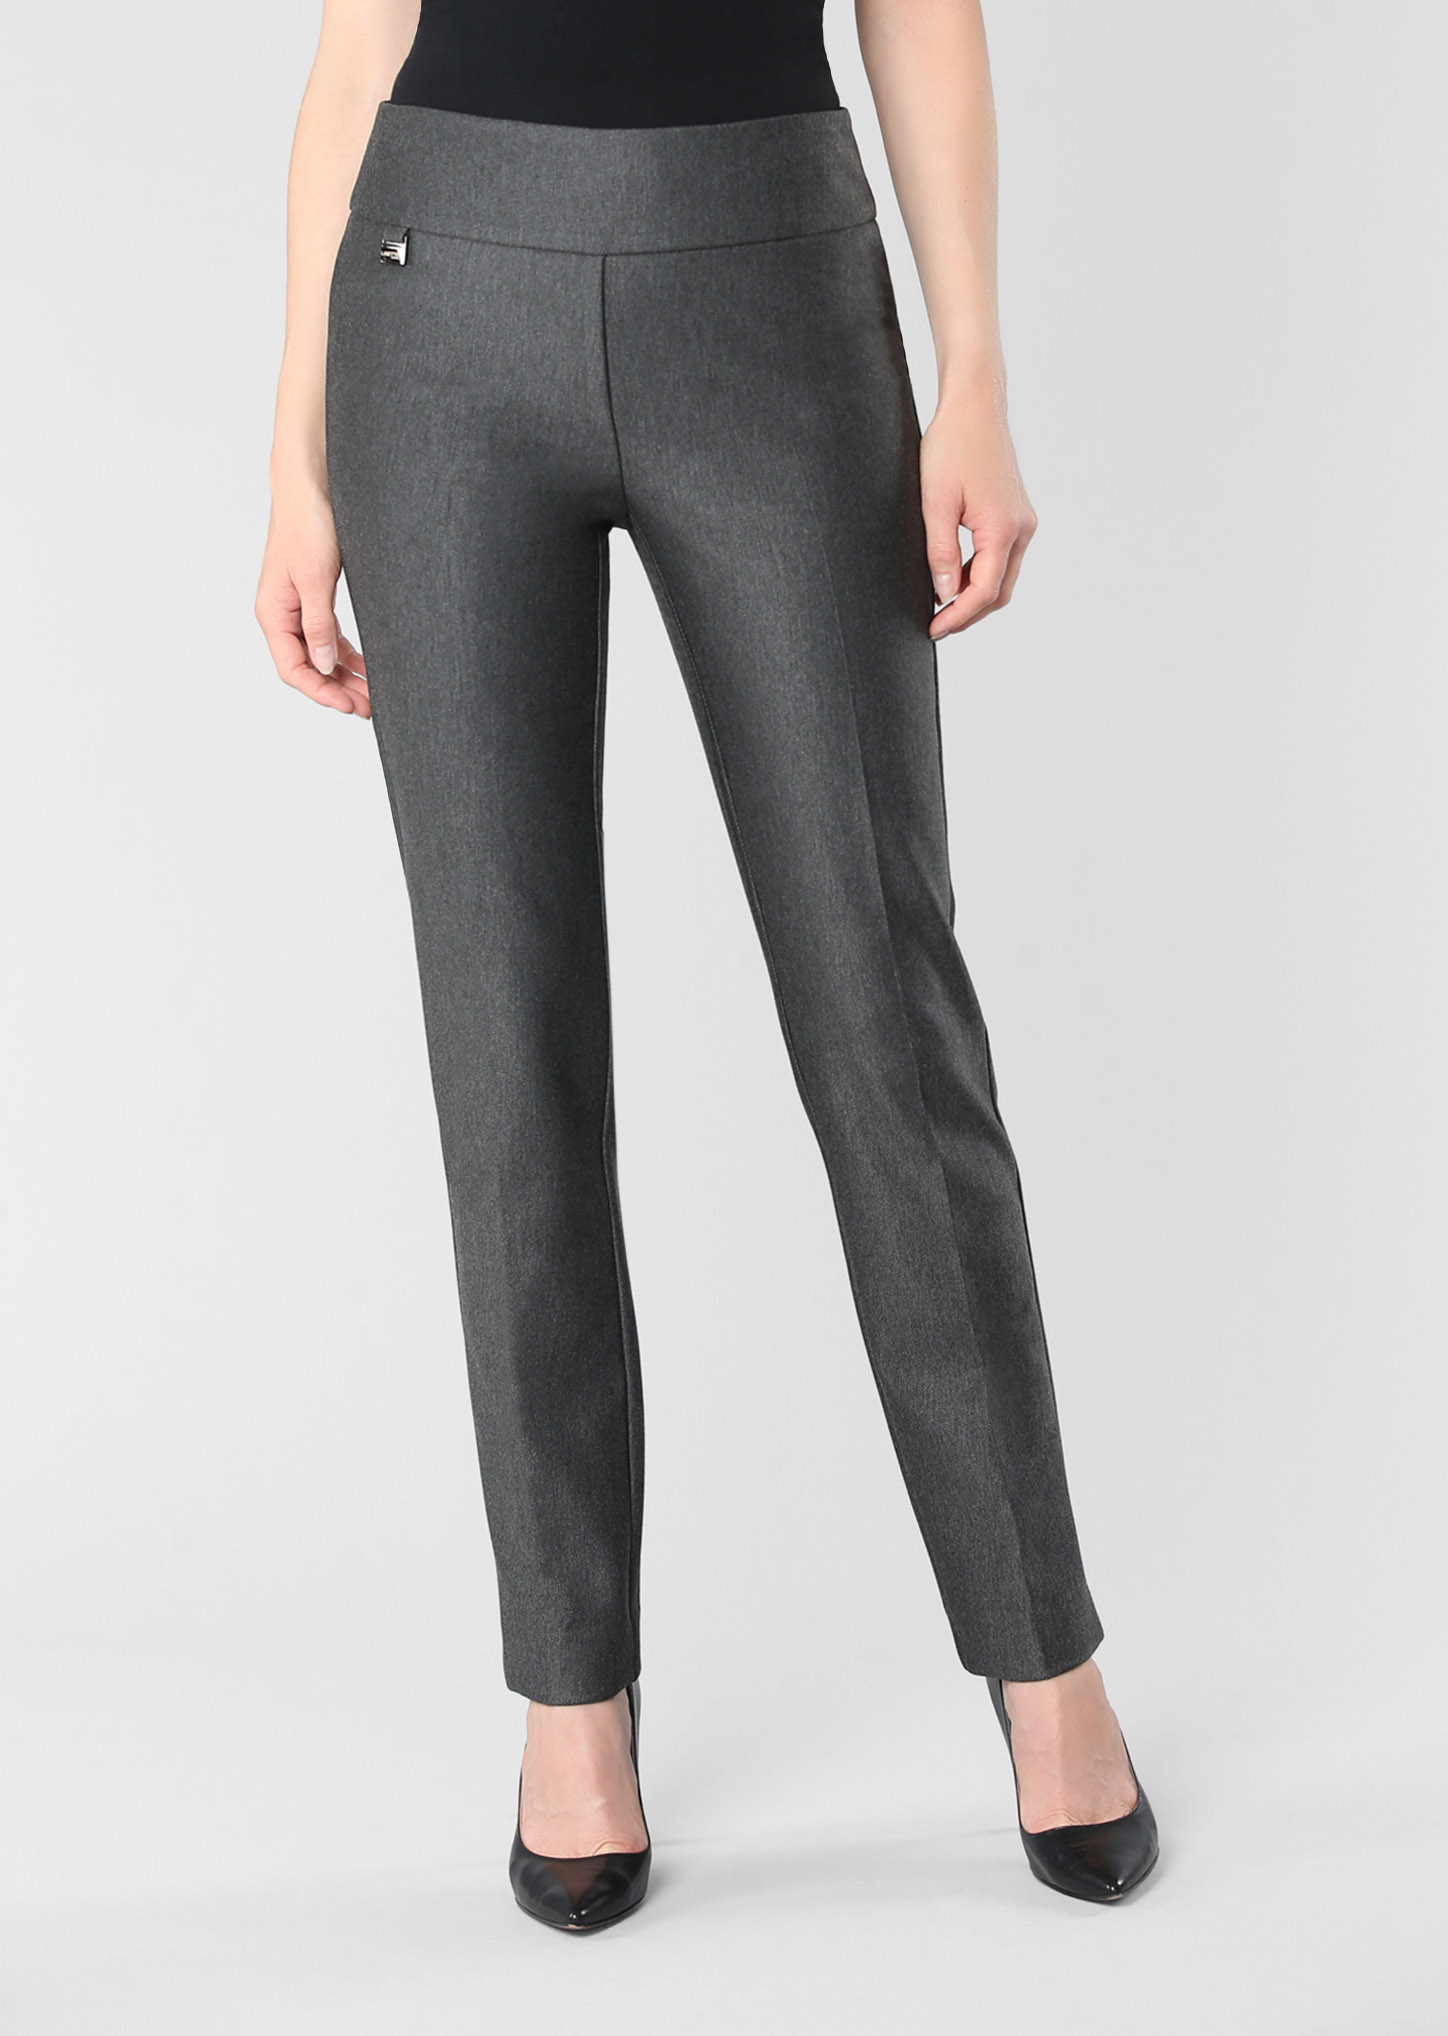 Lisette L. Skinny Leg Pant Style 73305 Wellington Twill Color Charcoal